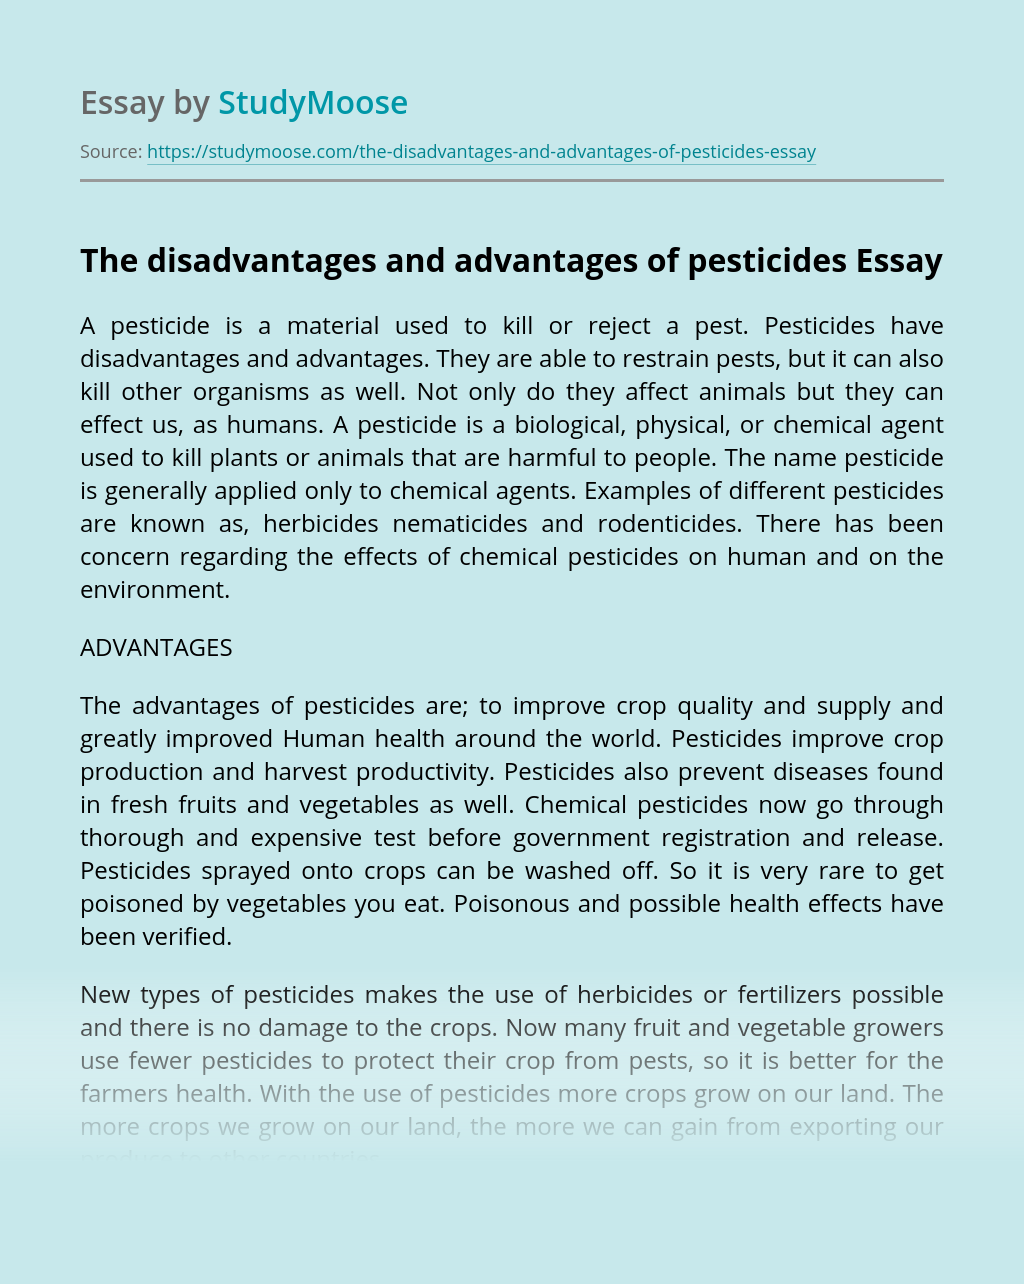 The disadvantages and advantages of pesticides